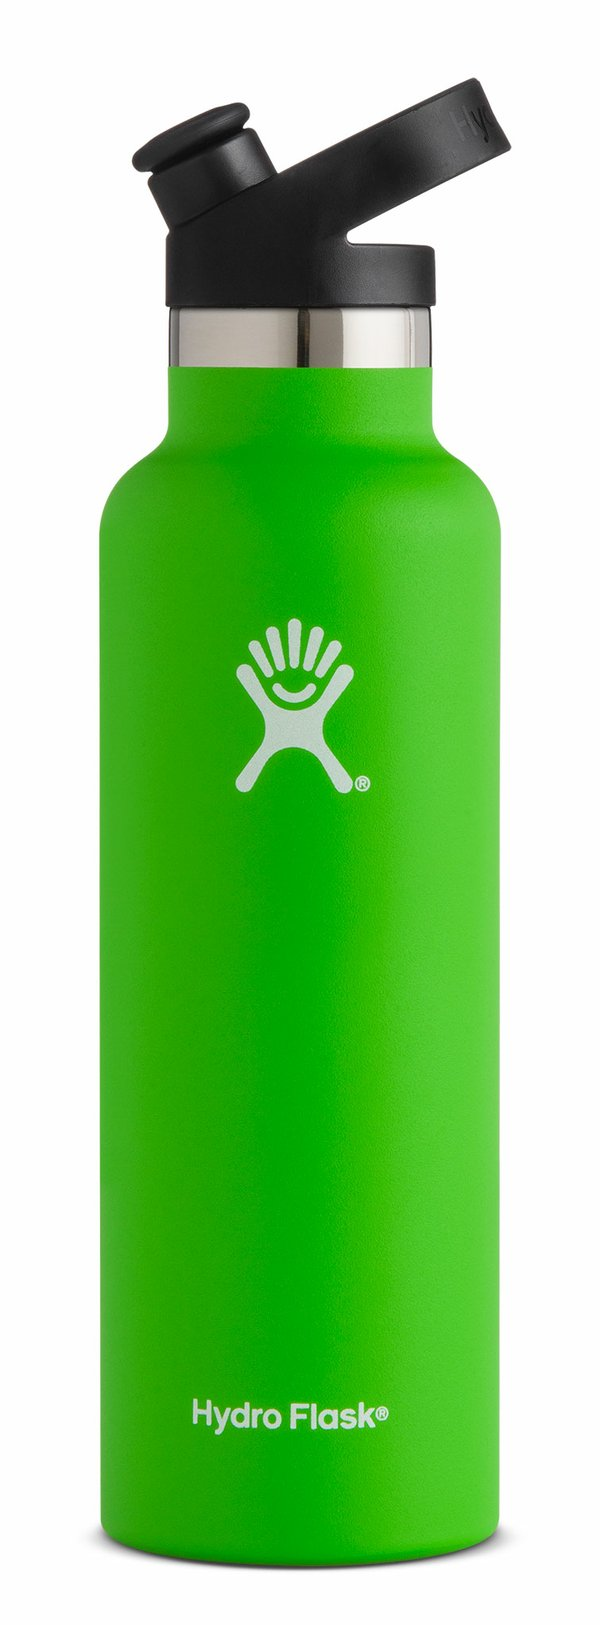 Hydro-Flask-21-oz-Standard-Mouth-with-Sport-Cap-Kiwi.jpg